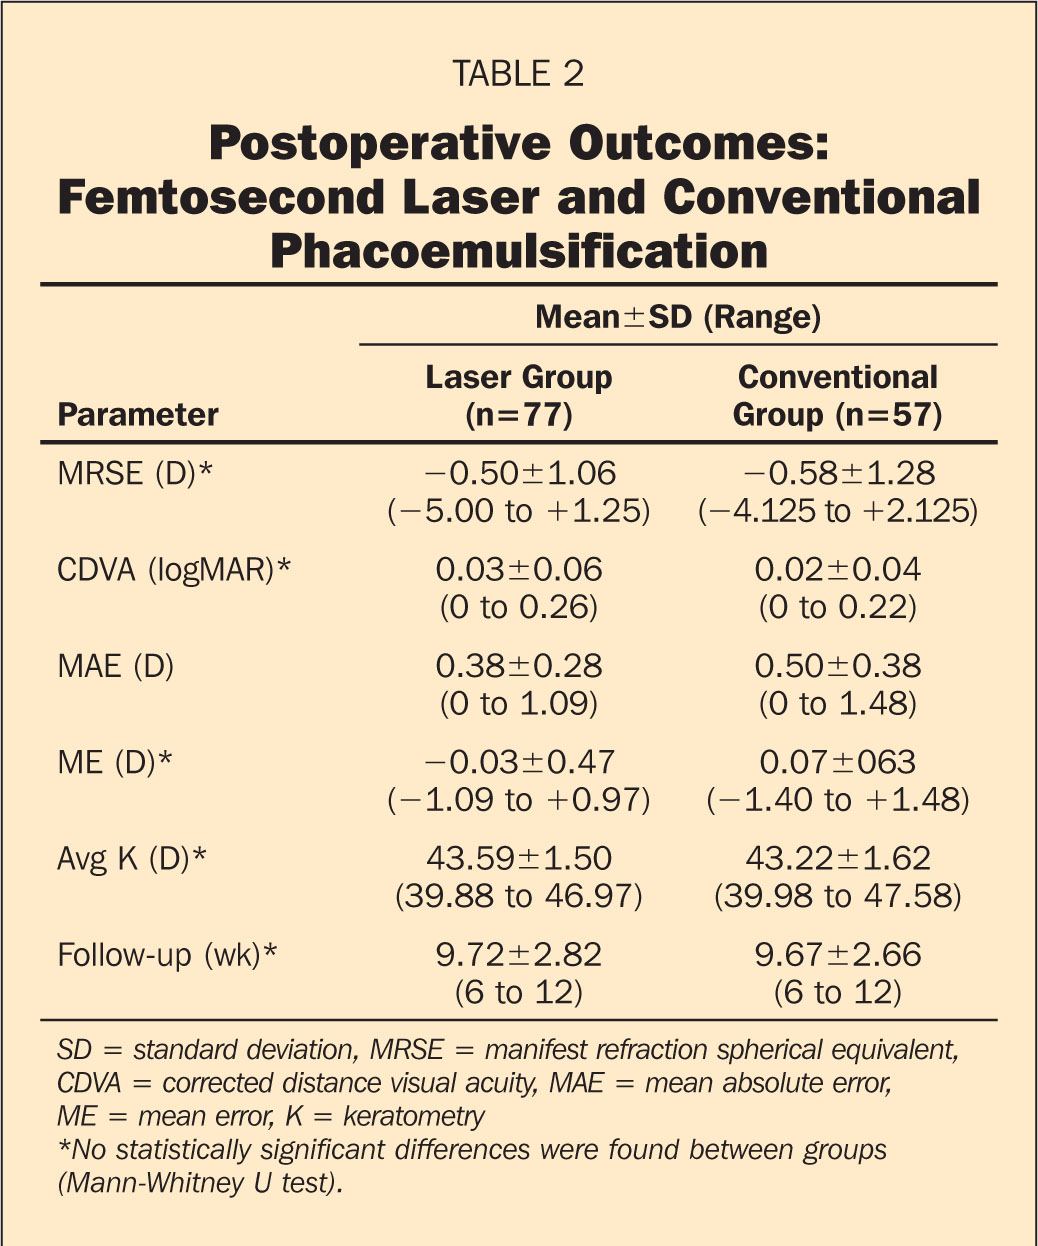 Postoperative Outcomes: Femtosecond Laser and Conventional Phacoemulsification